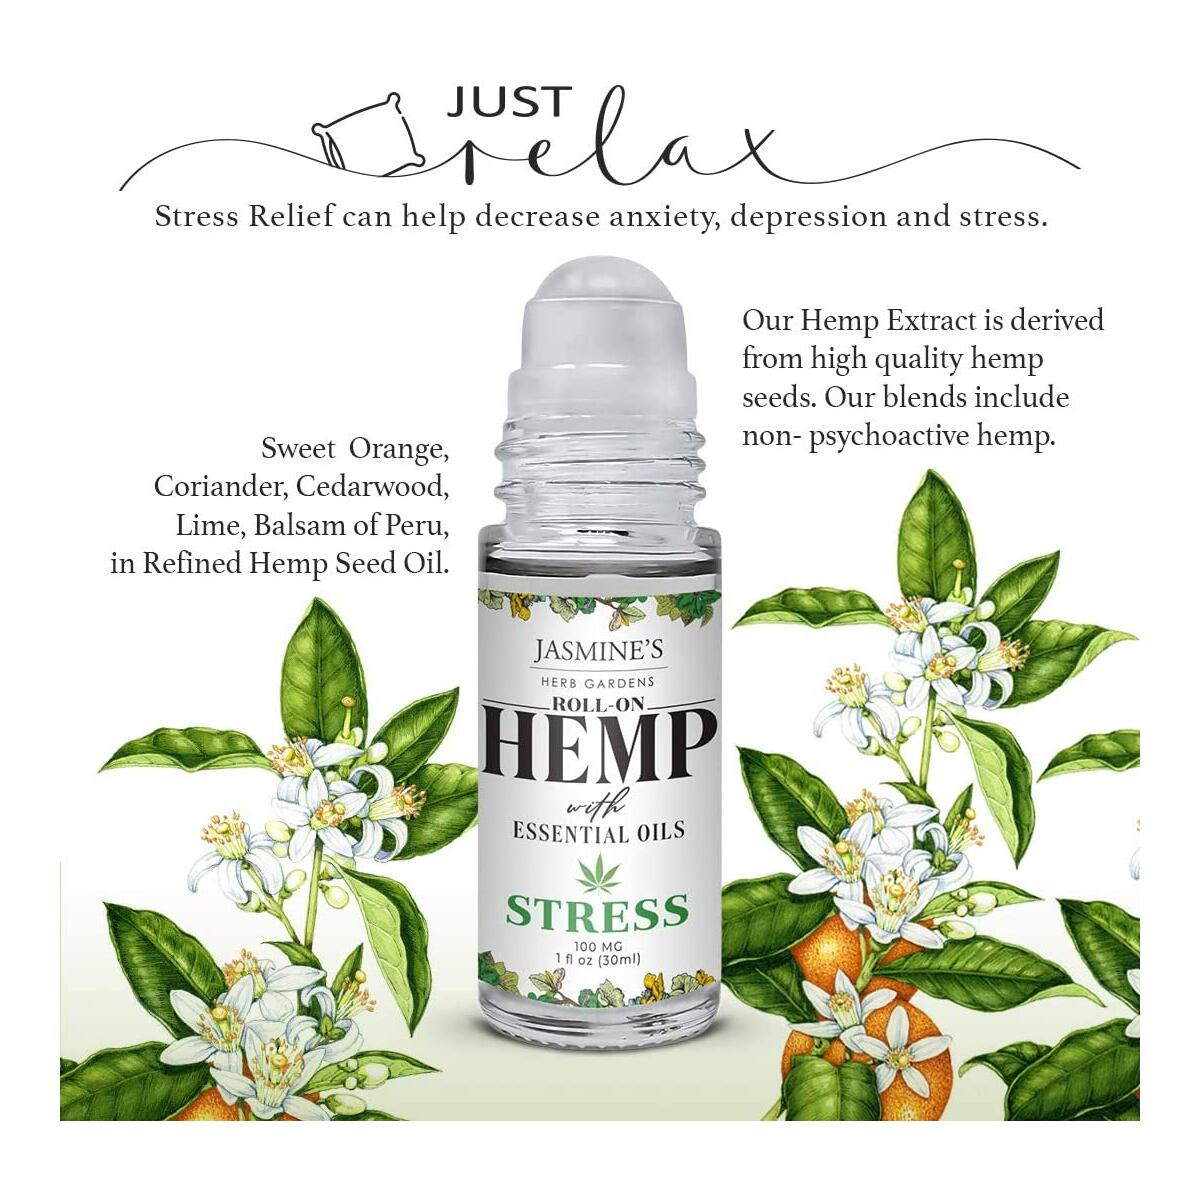 Stress Relief Essential Oil Blend with Hemp Extract - Roll On Essential Oil Blend - Relaxing & Unwinding, Fights Anxiety - 1 fl oz